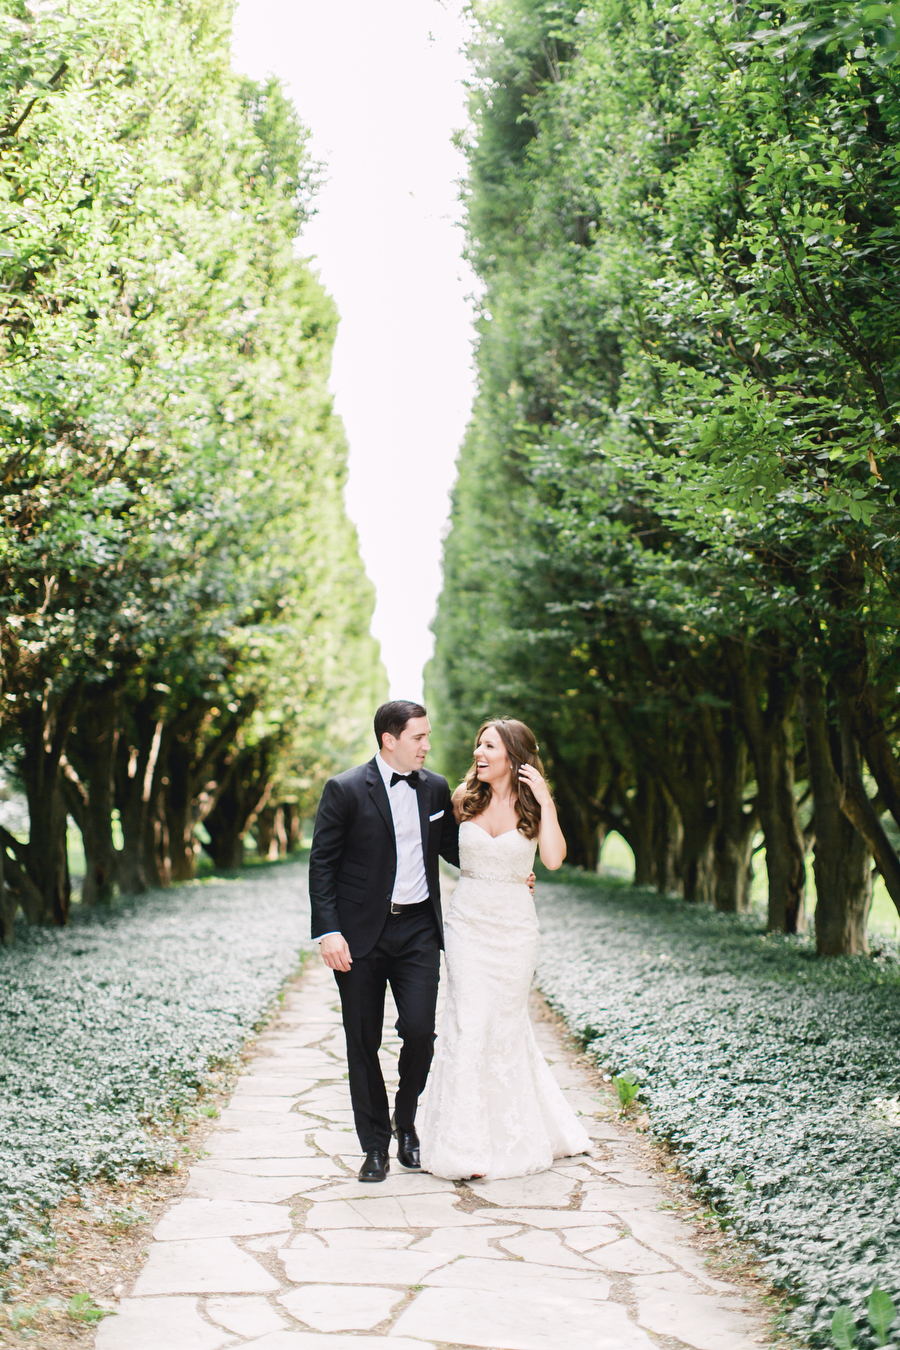 Château des Charmes Winery Wedding | Niagara-on-the-Lake | photo by: ARTIESE